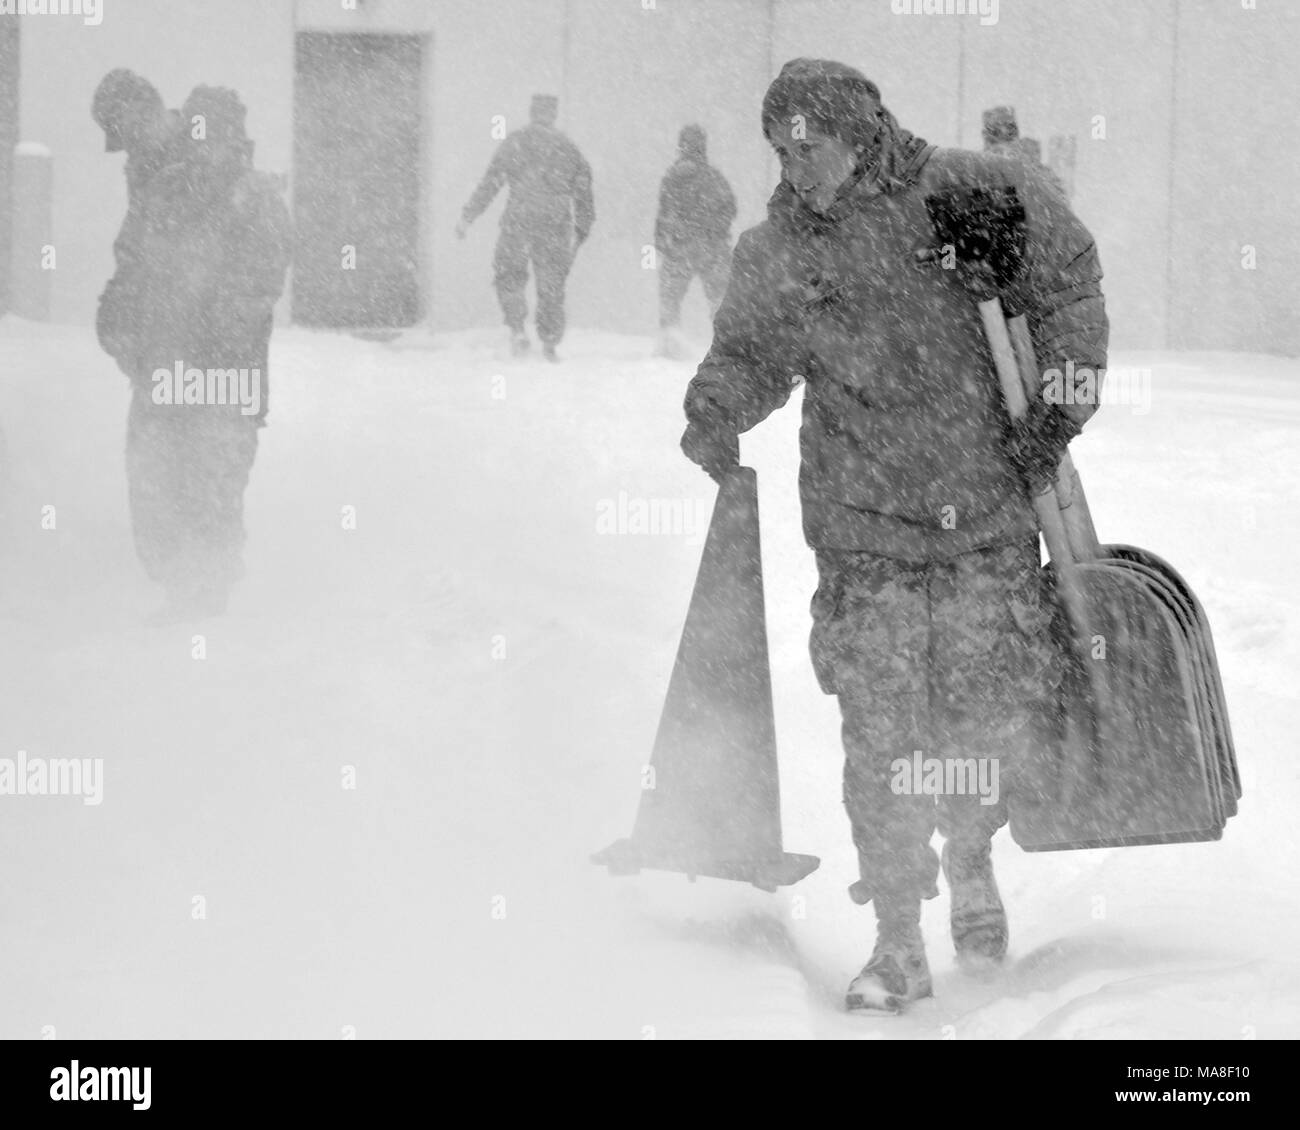 A New York Army National Guard Soldier from the 42nd Combat Aviation Brigade based in Latham, New York prepares for missions as a massive snow storm hits New York, March 14, 2017. () Stock Photo